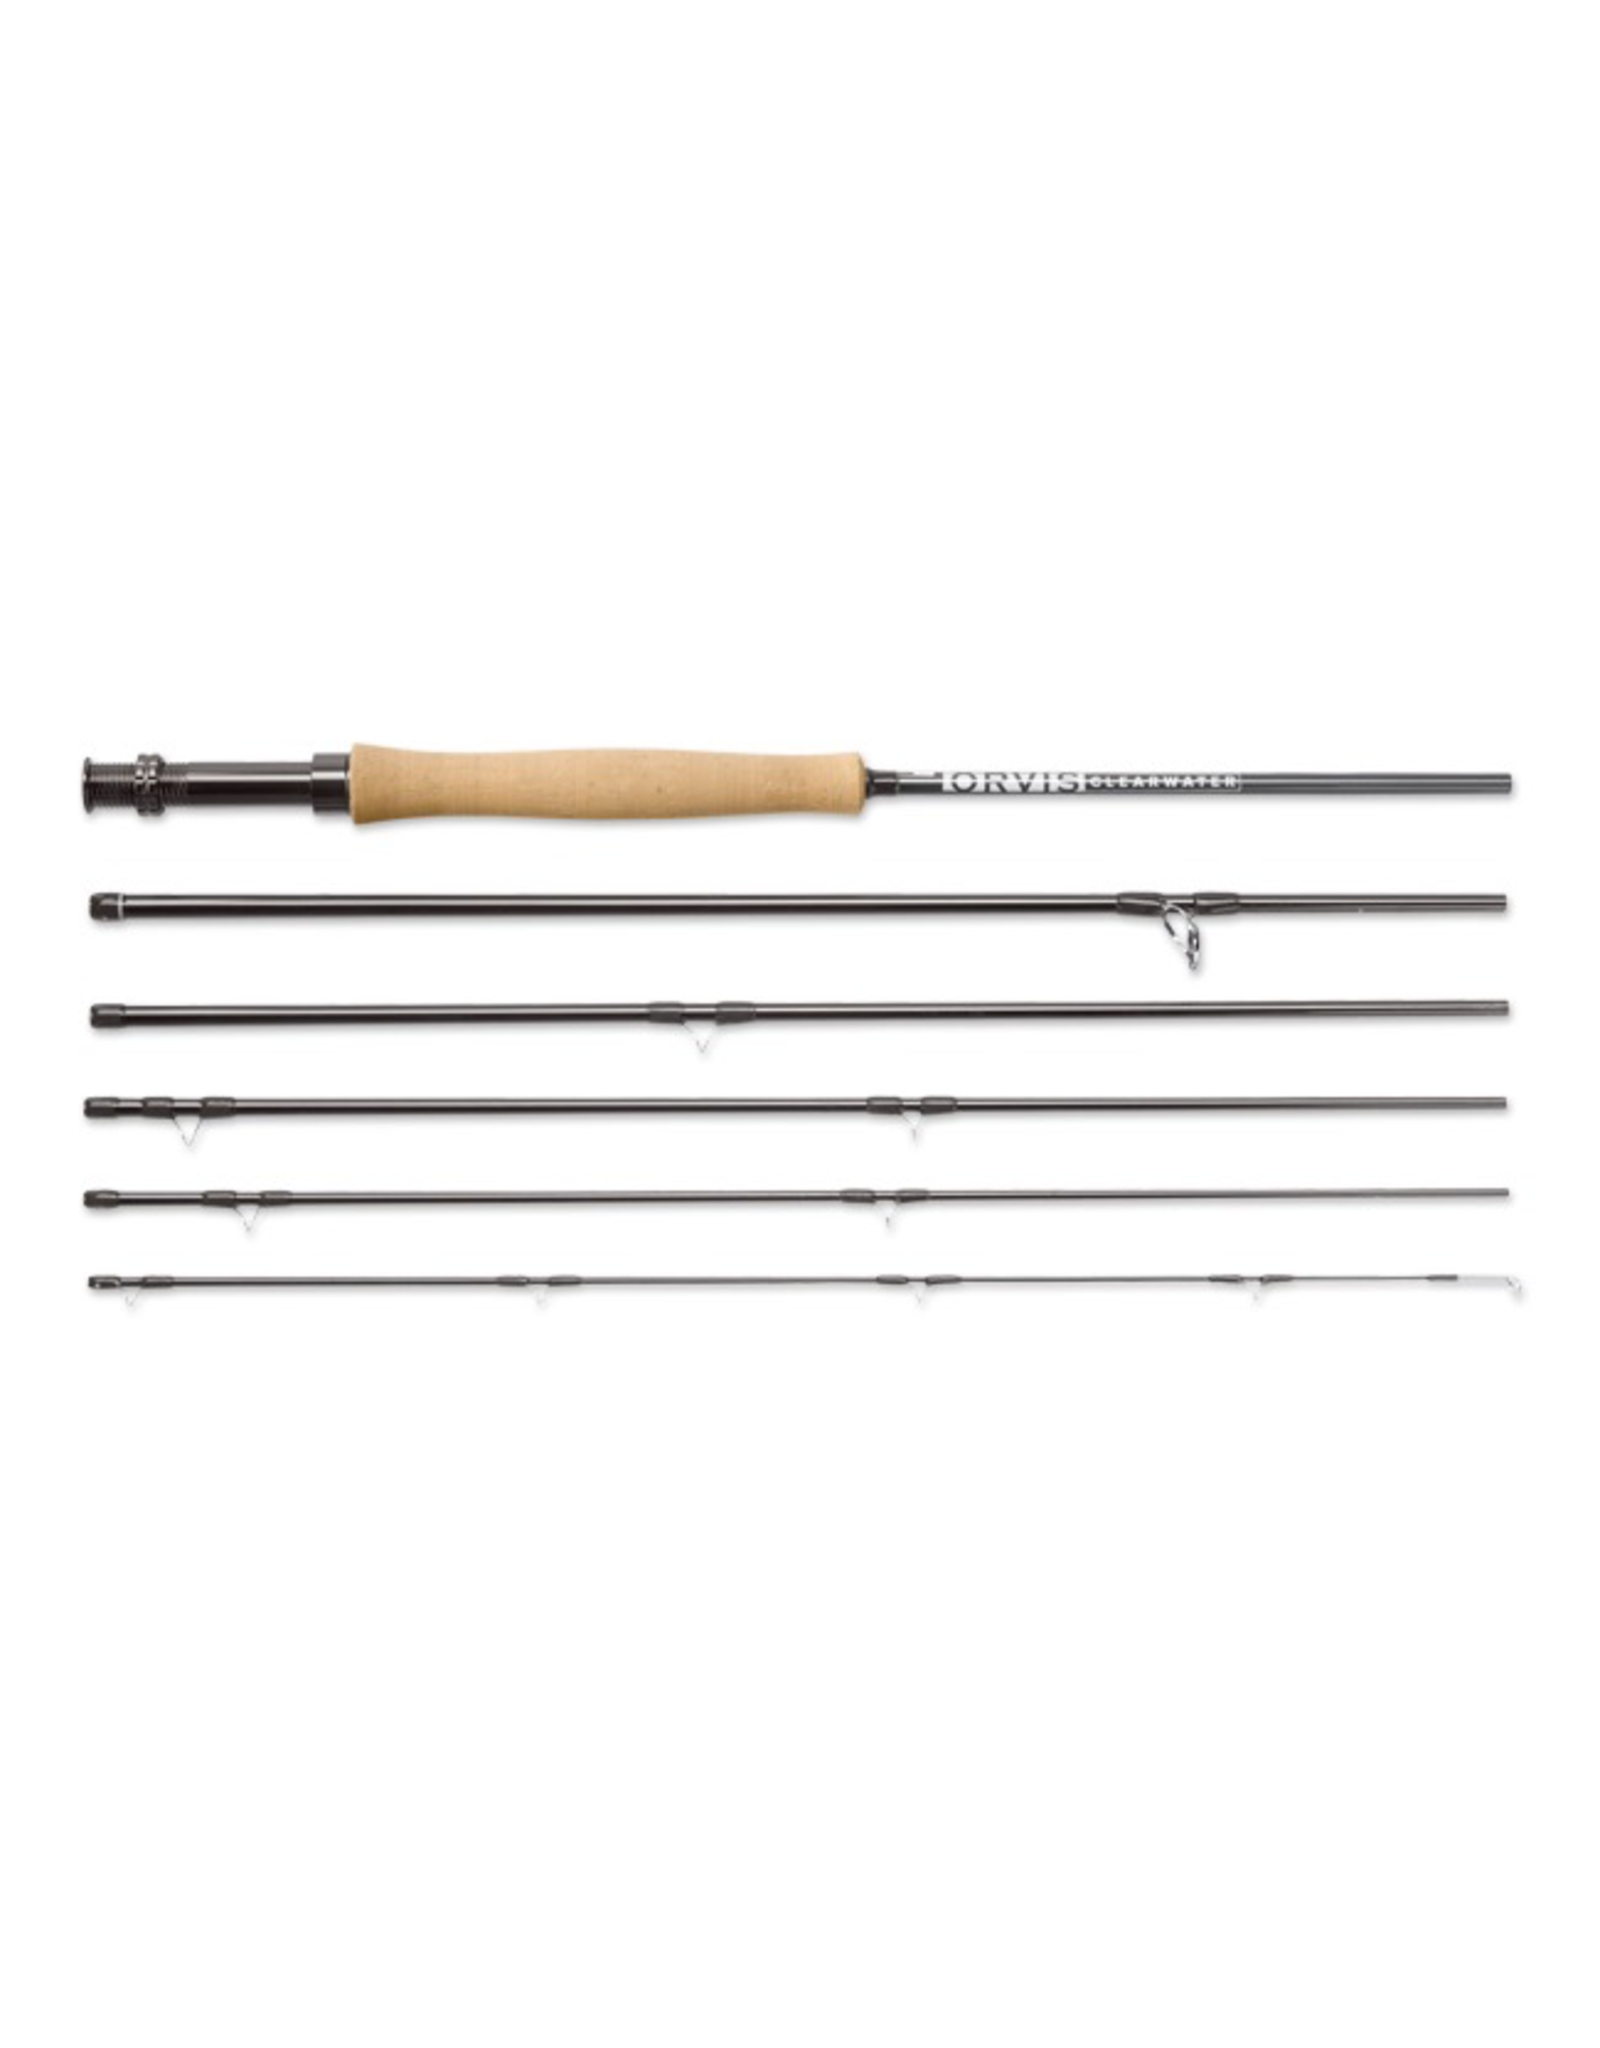 Orvis Cleartwater 9 ft. 6 wt 6 piece rod